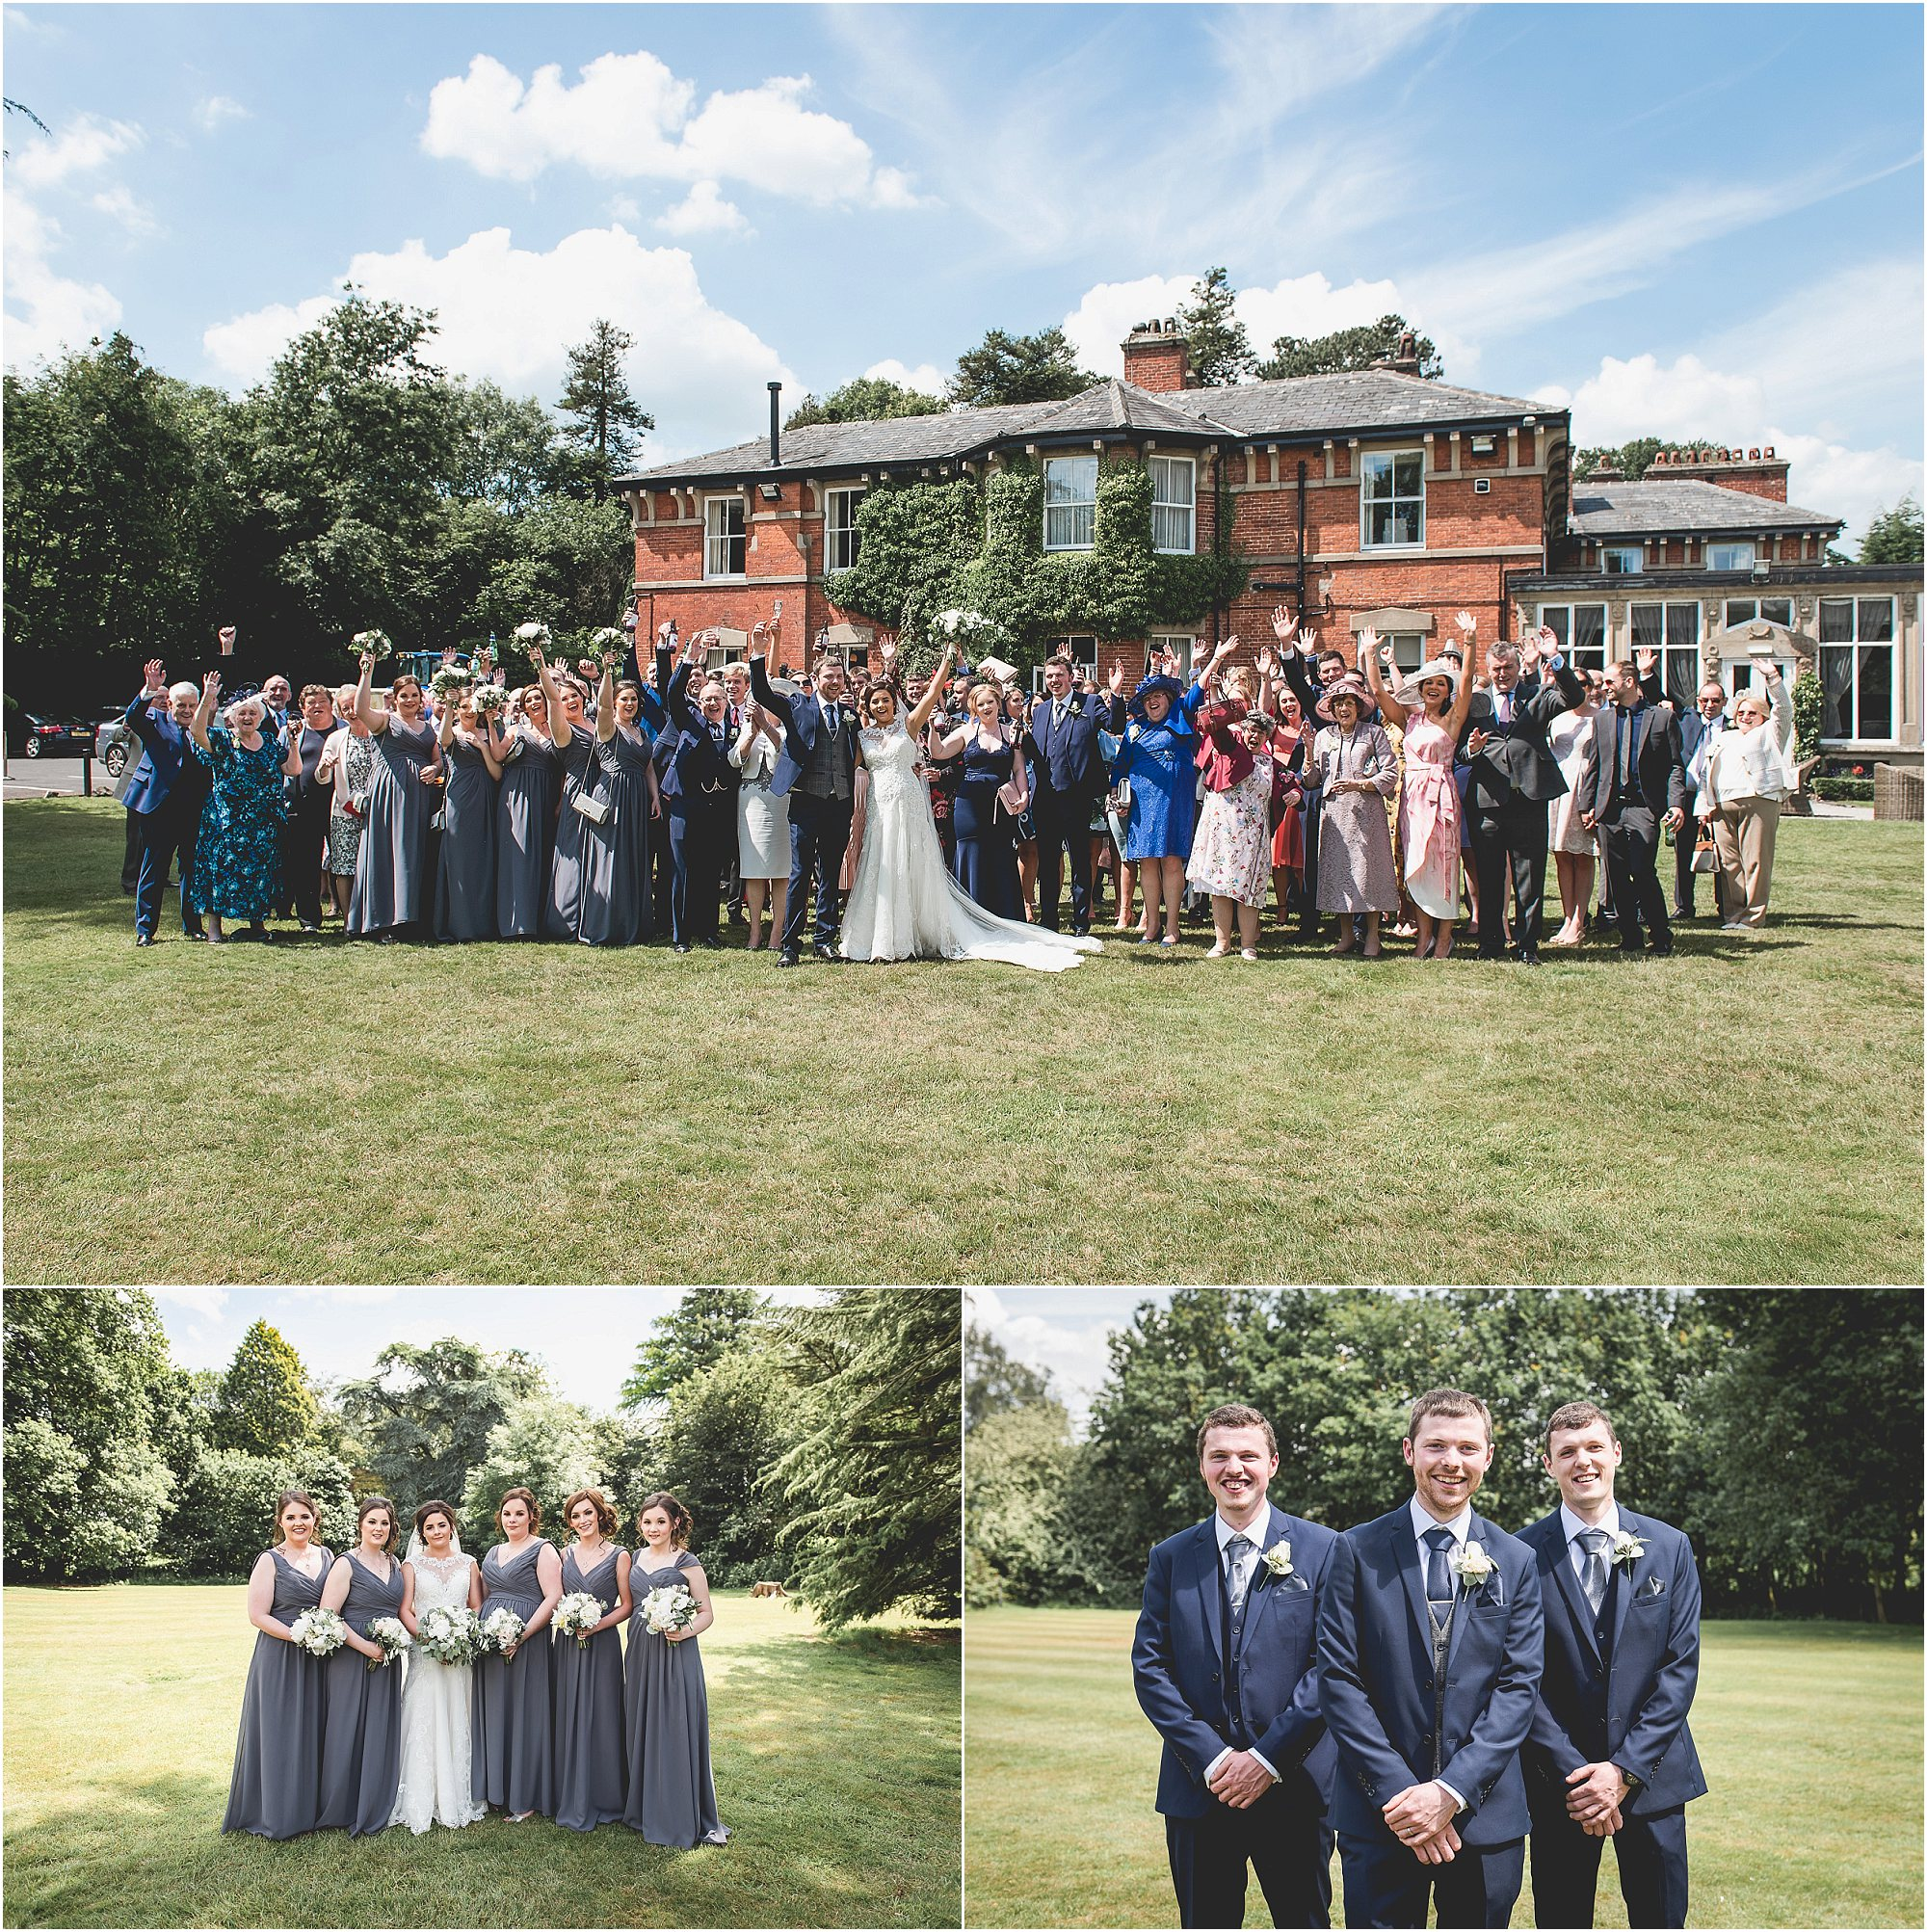 wedding group portraits with guests, bridesmaids & groomsmen